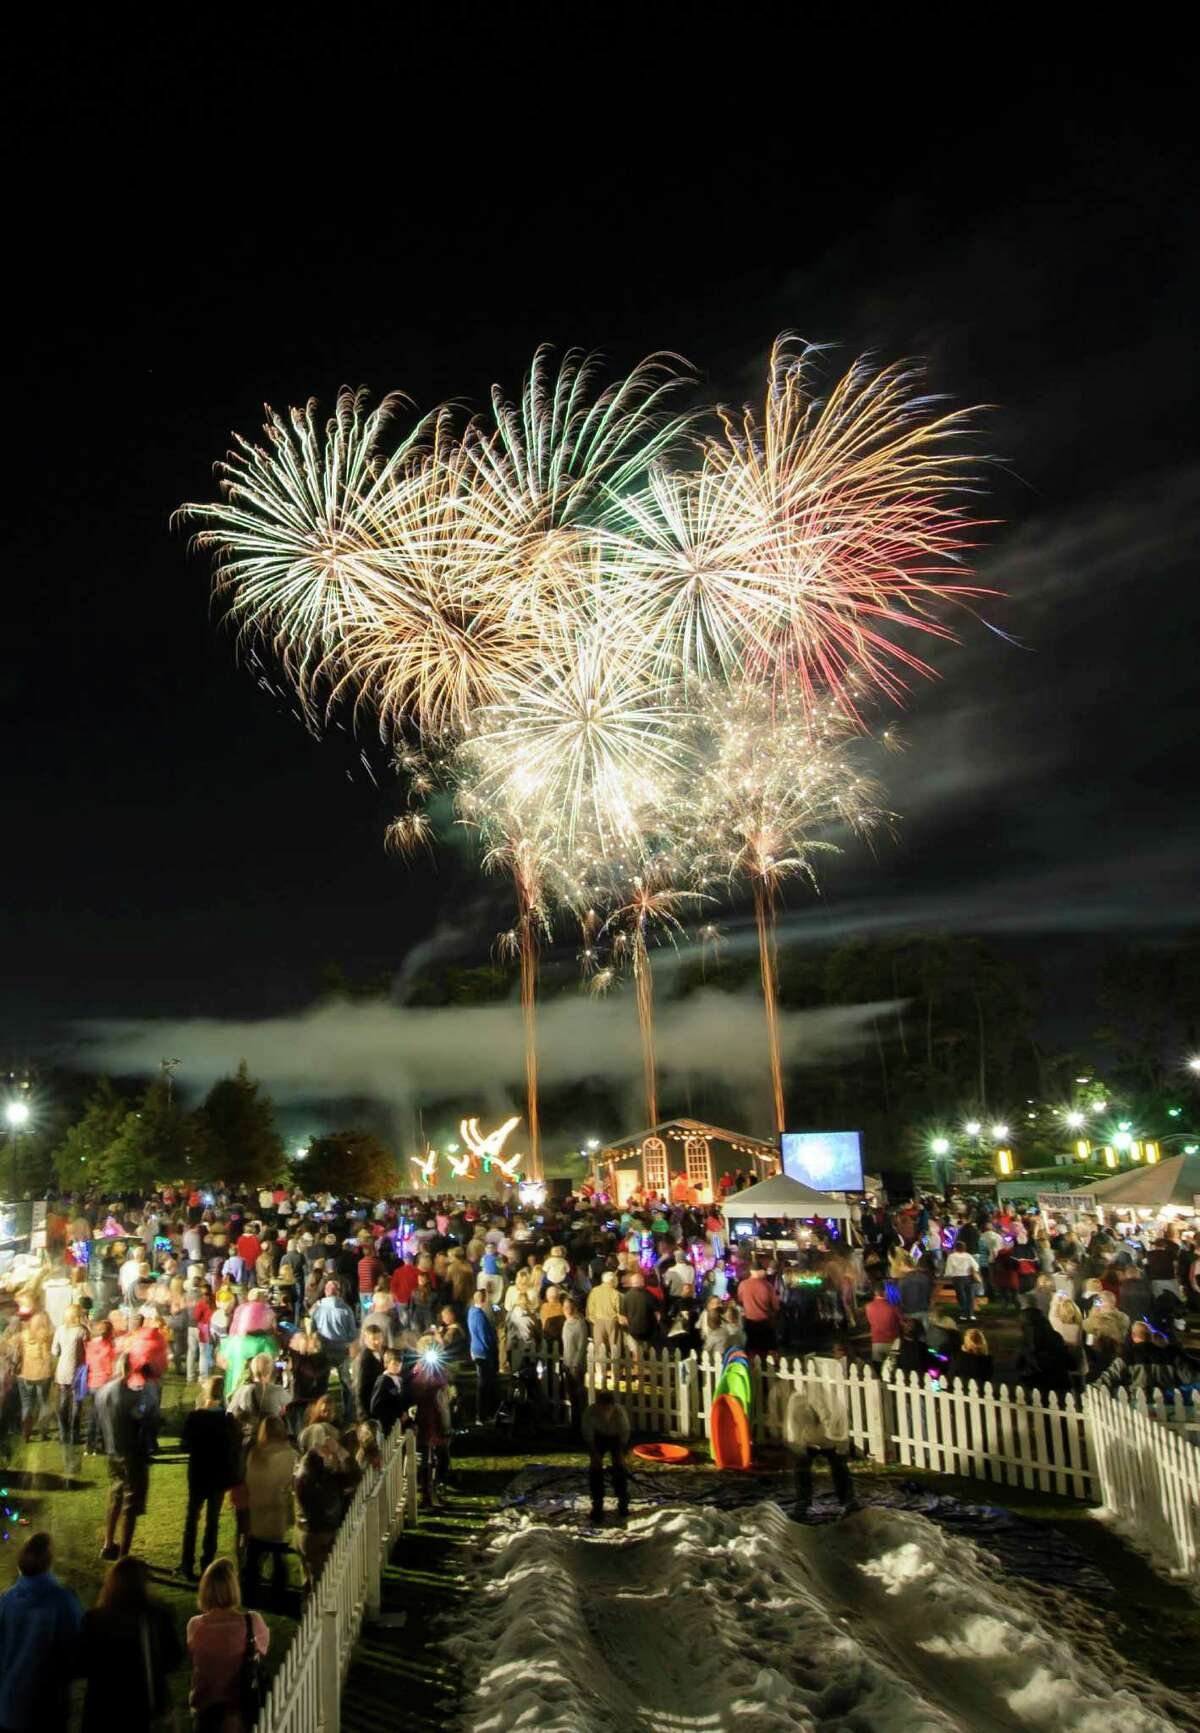 The 32nd annual Lighting of the Doves is set for 3-9 p.m. Saturday, Nov. 22.